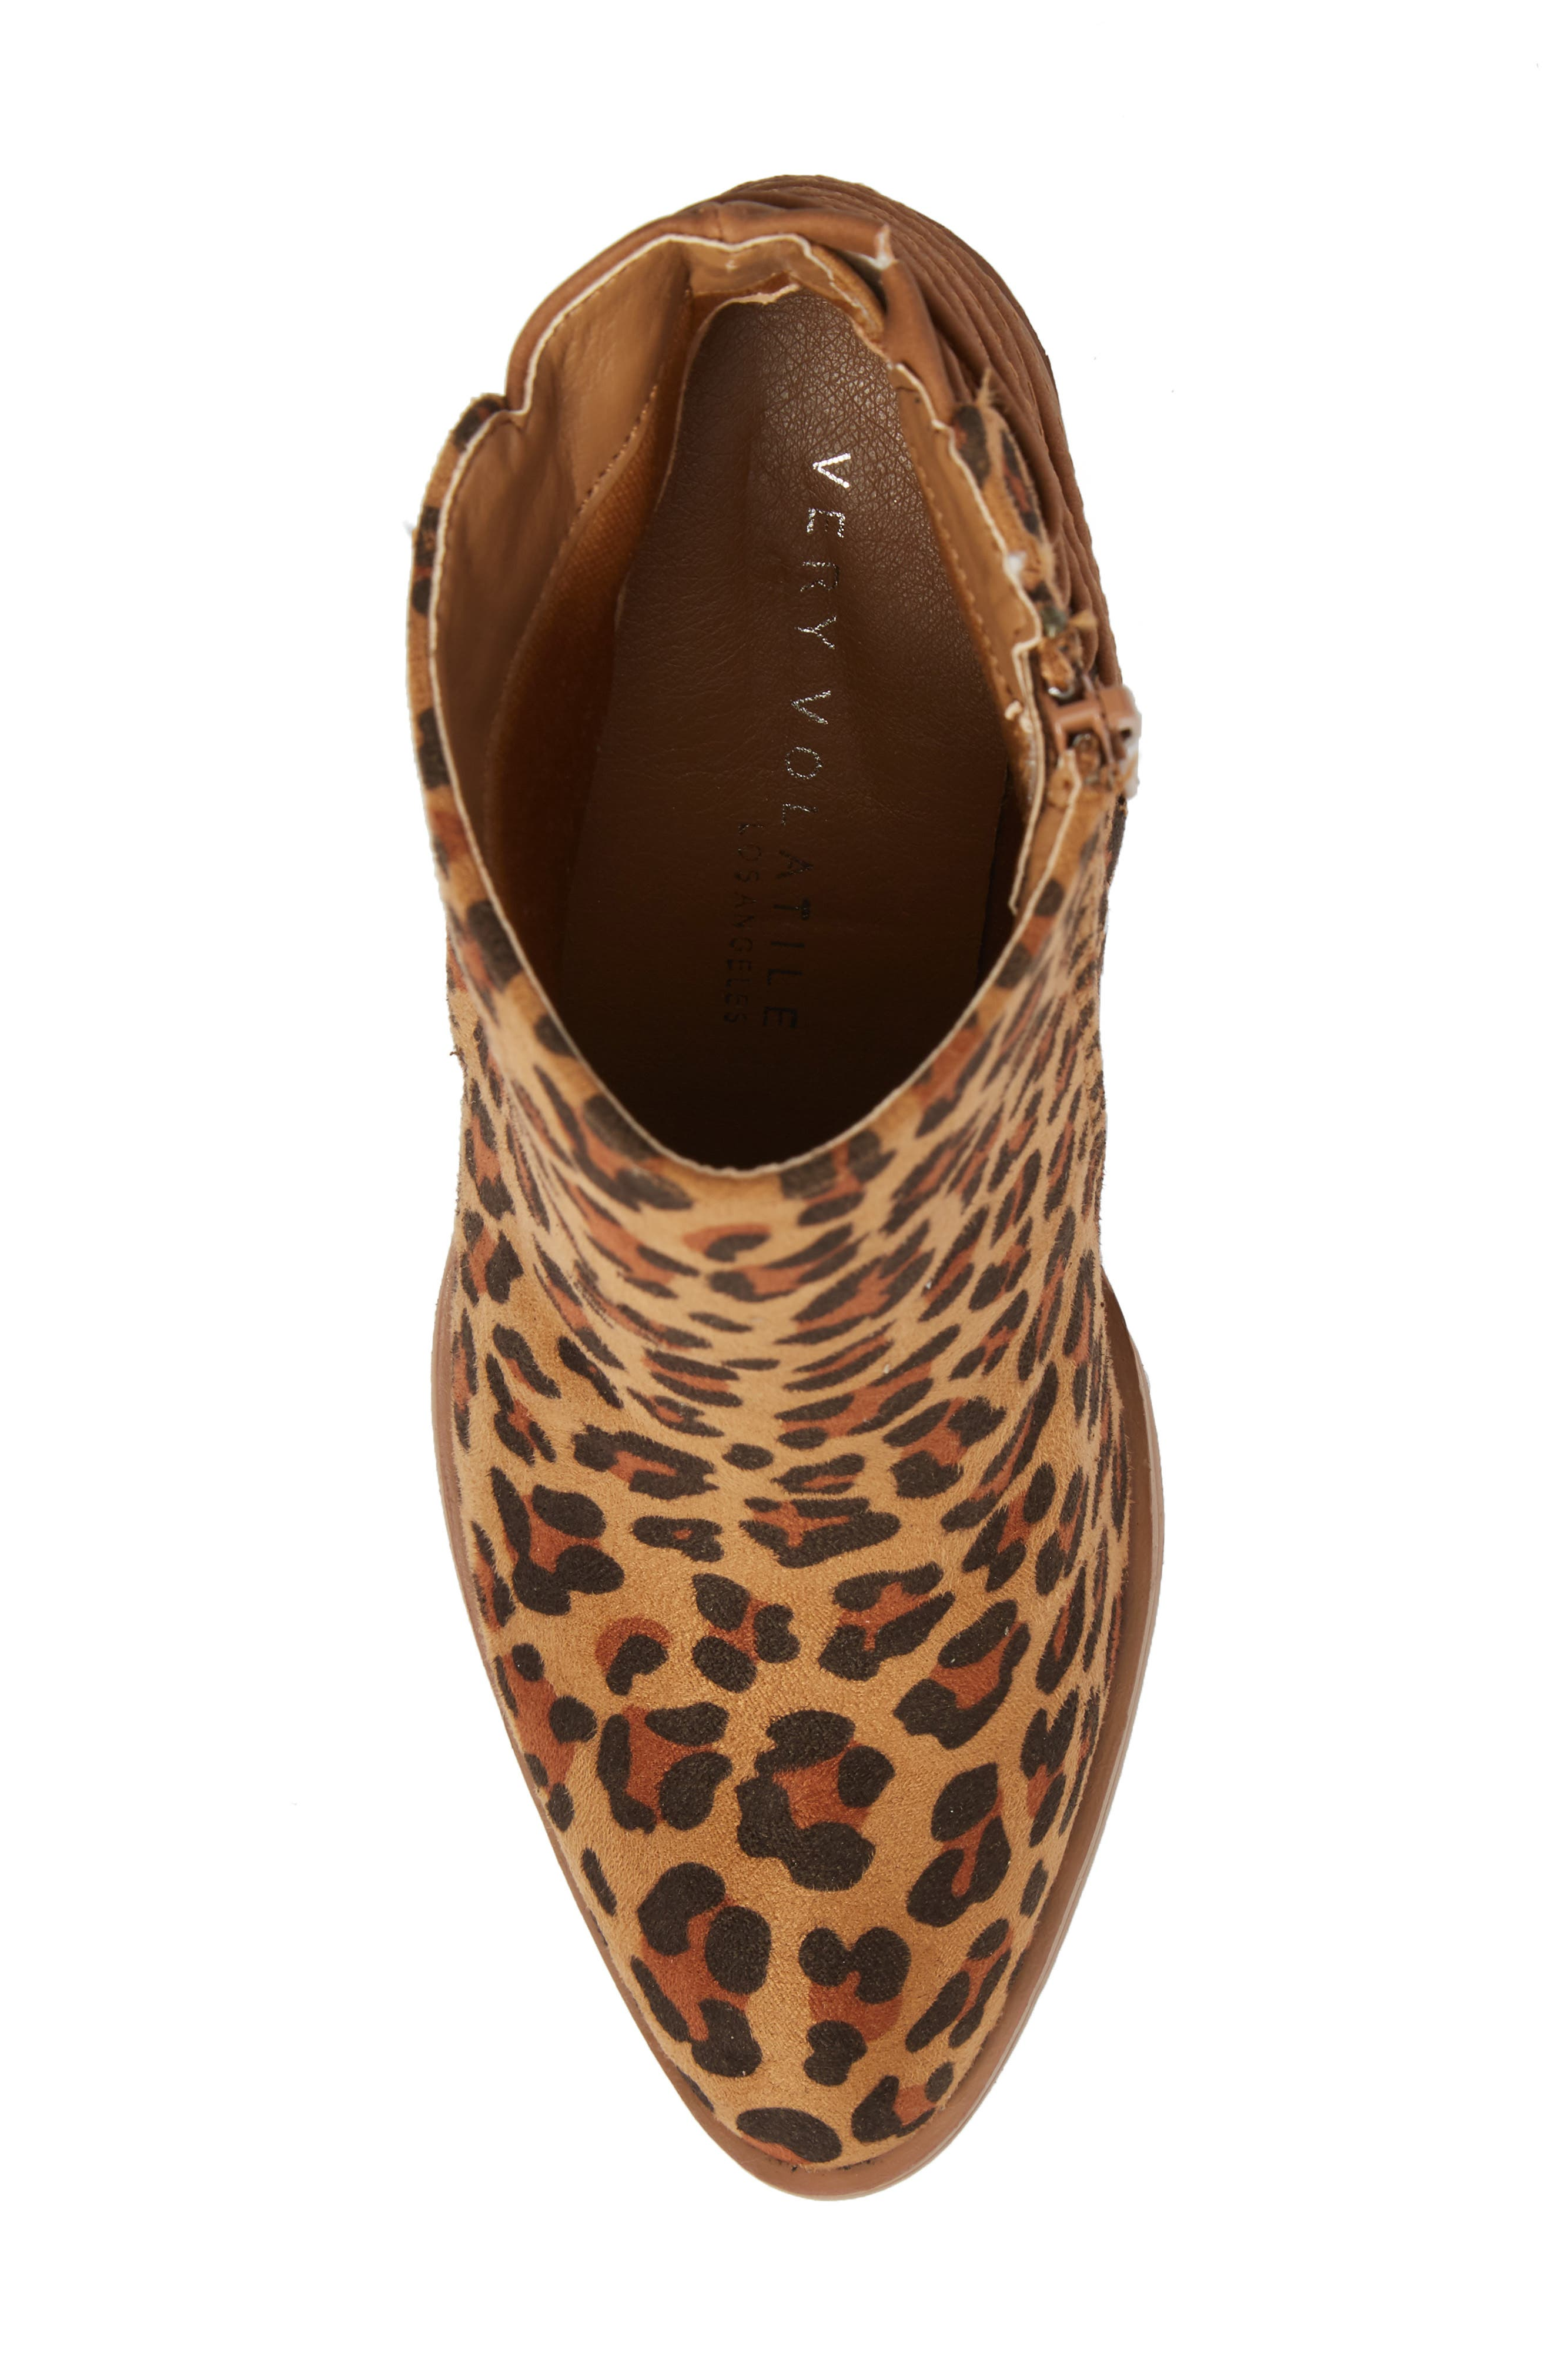 Lacey Leopard Bootie,                             Alternate thumbnail 5, color,                             Tan Leopard Suede Leather